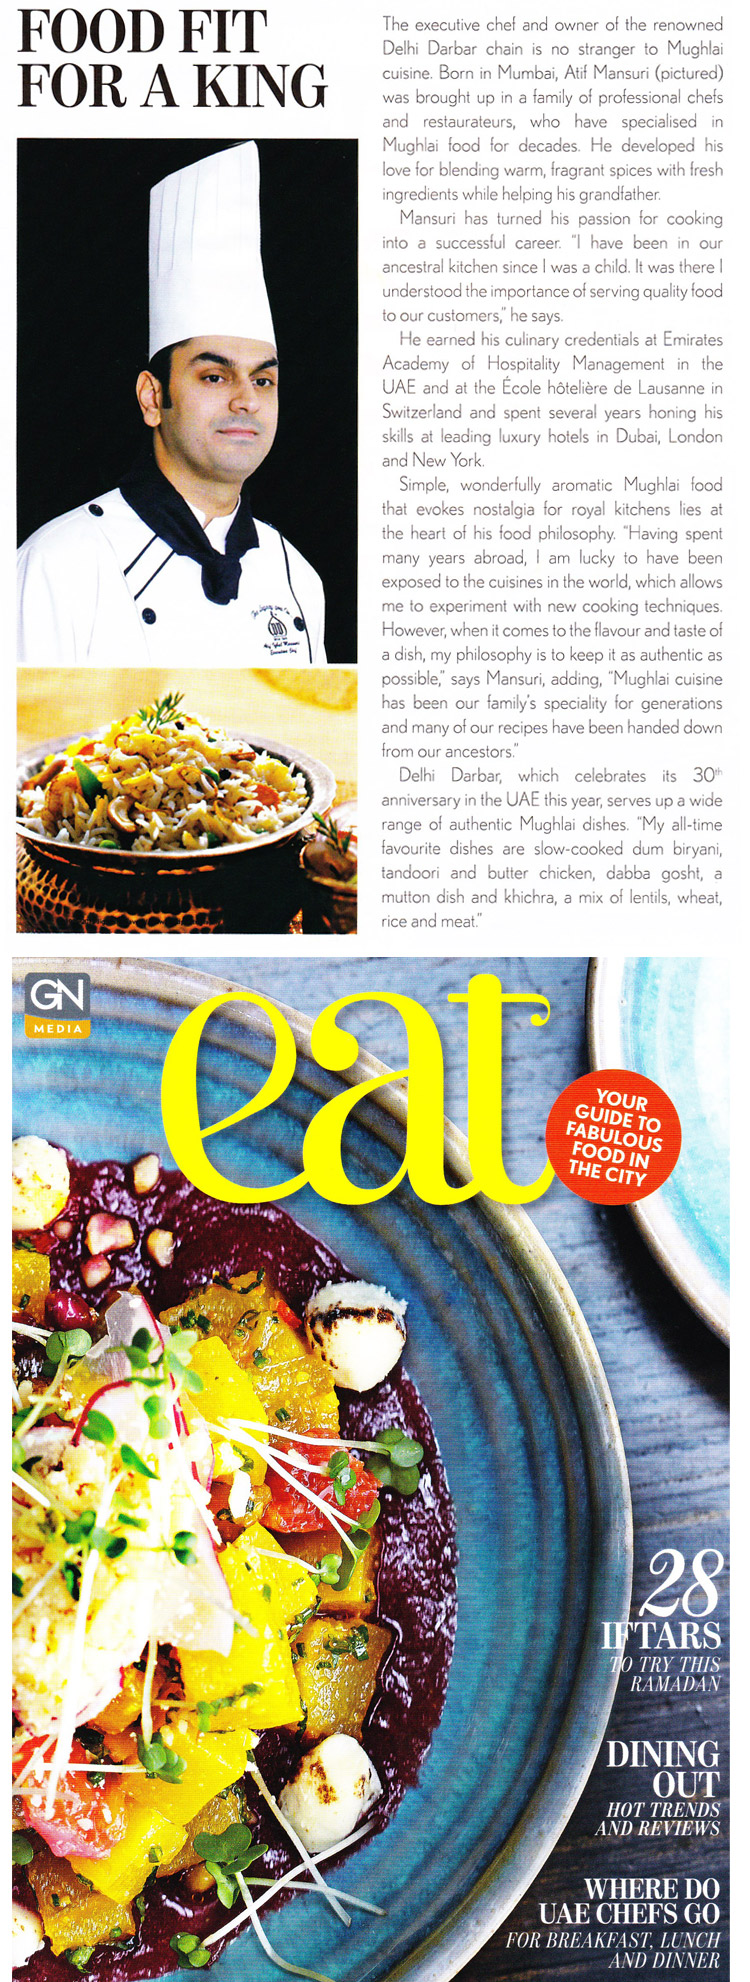 EAT-Magazine---Food-Fit-for-a-King---18-June-2015